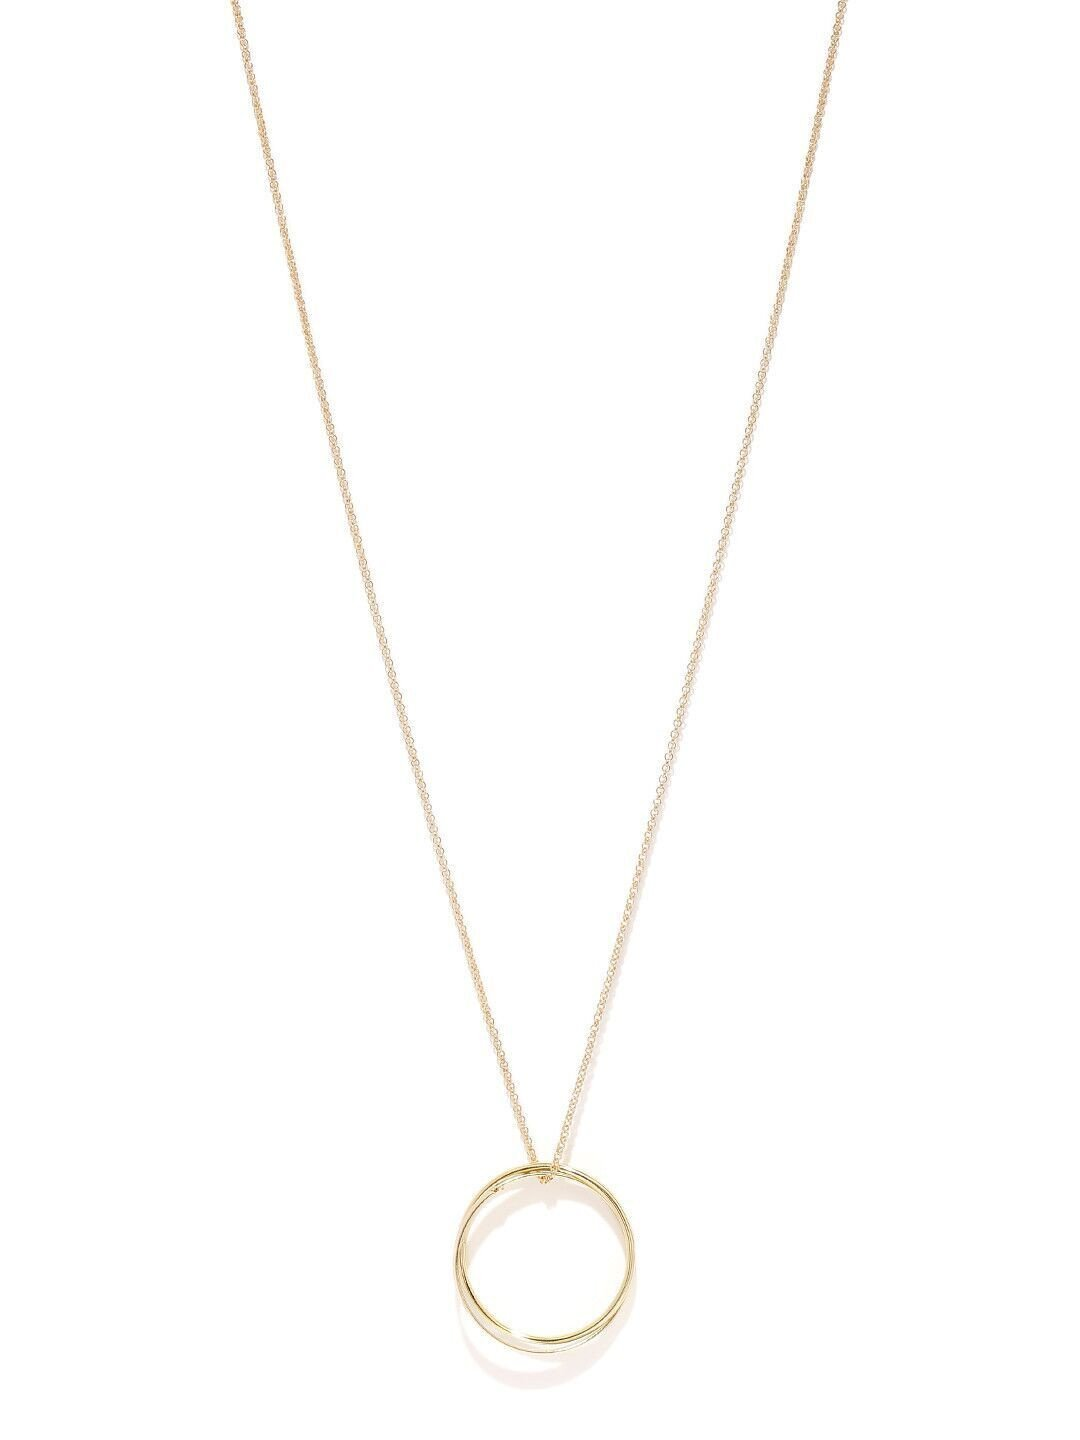 Celine Pendant Necklace